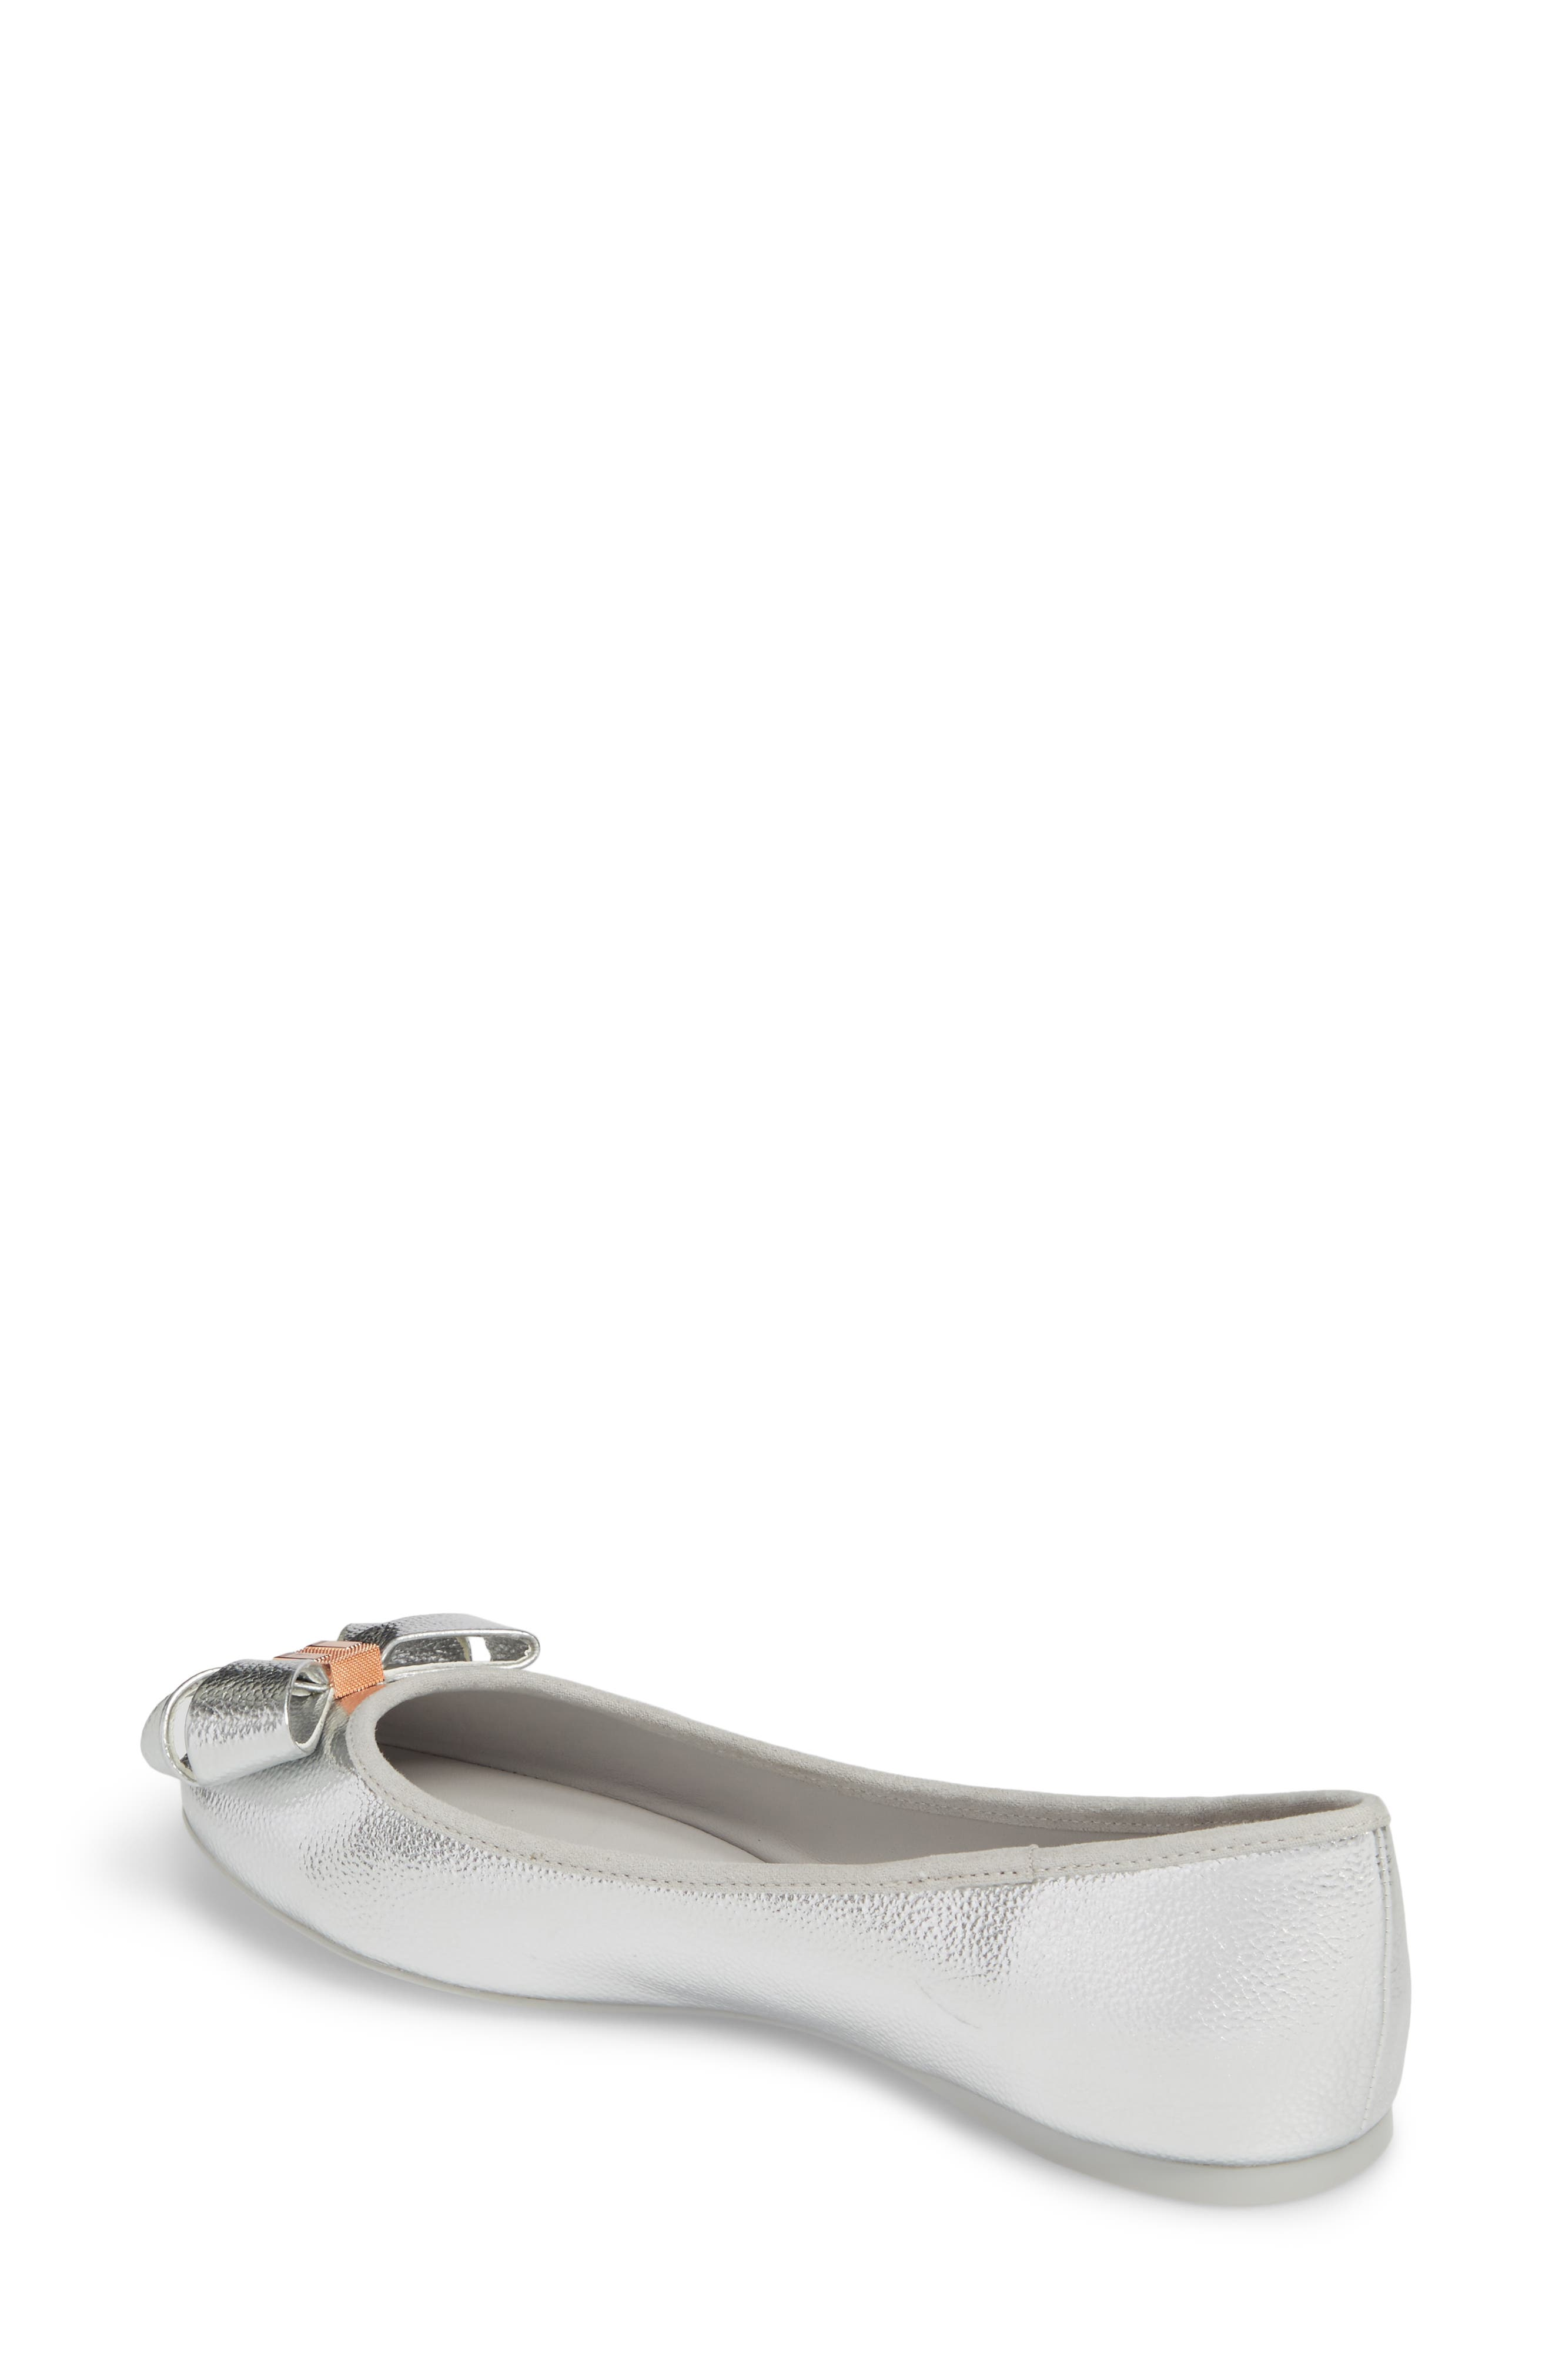 Immet Ballet Flat,                             Alternate thumbnail 2, color,                             SILVER